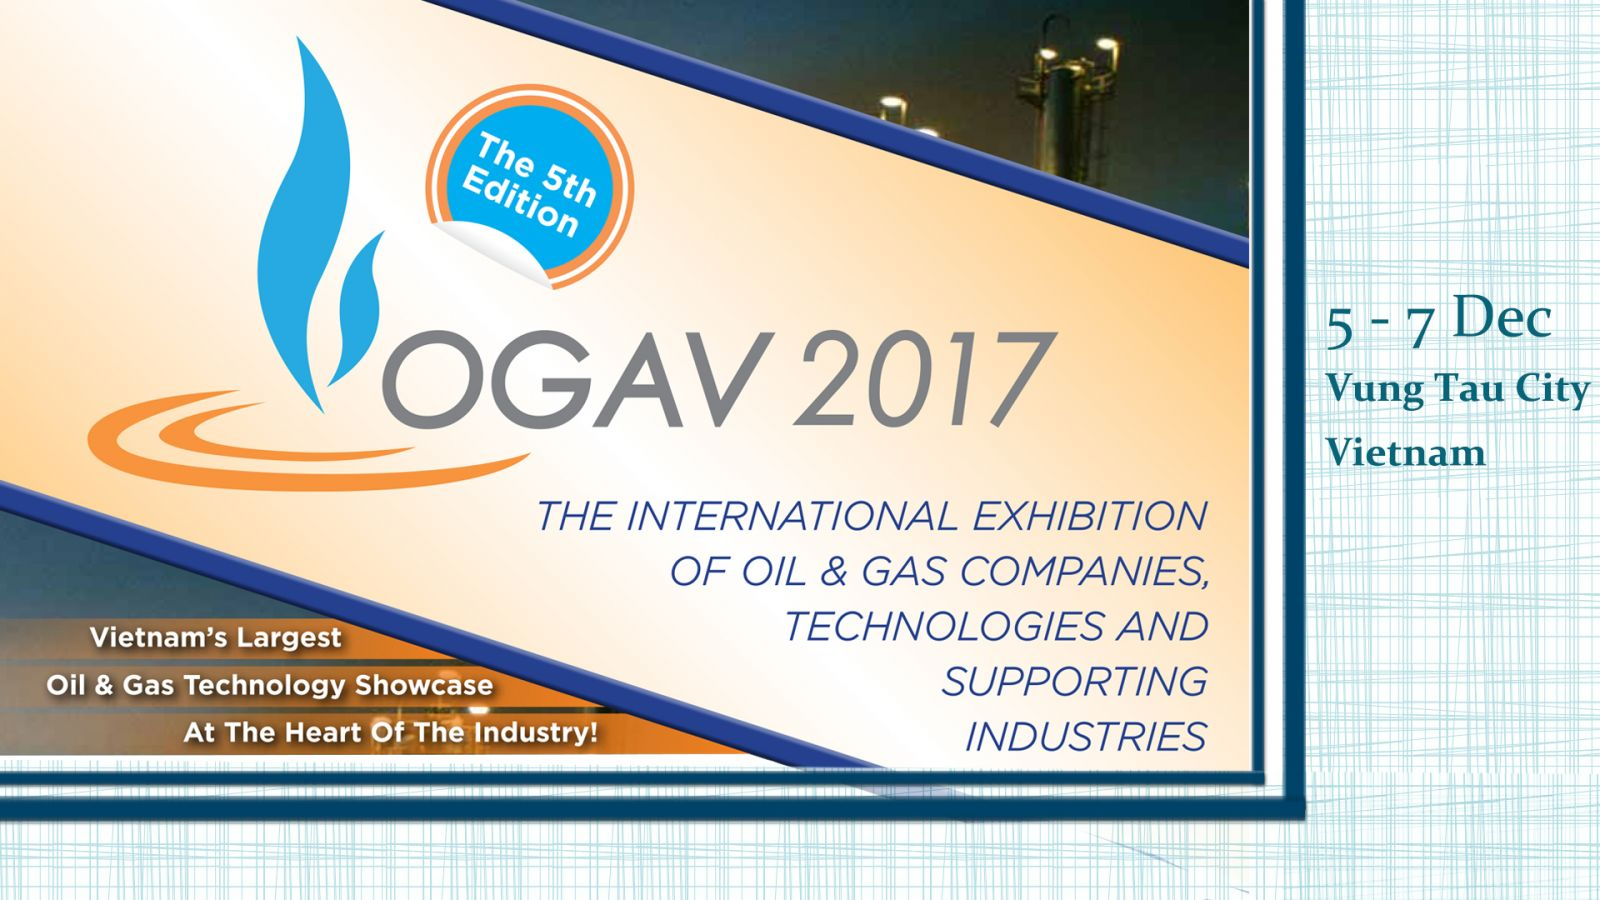 Vietnam Largest Oil & Gas Technology Showcase